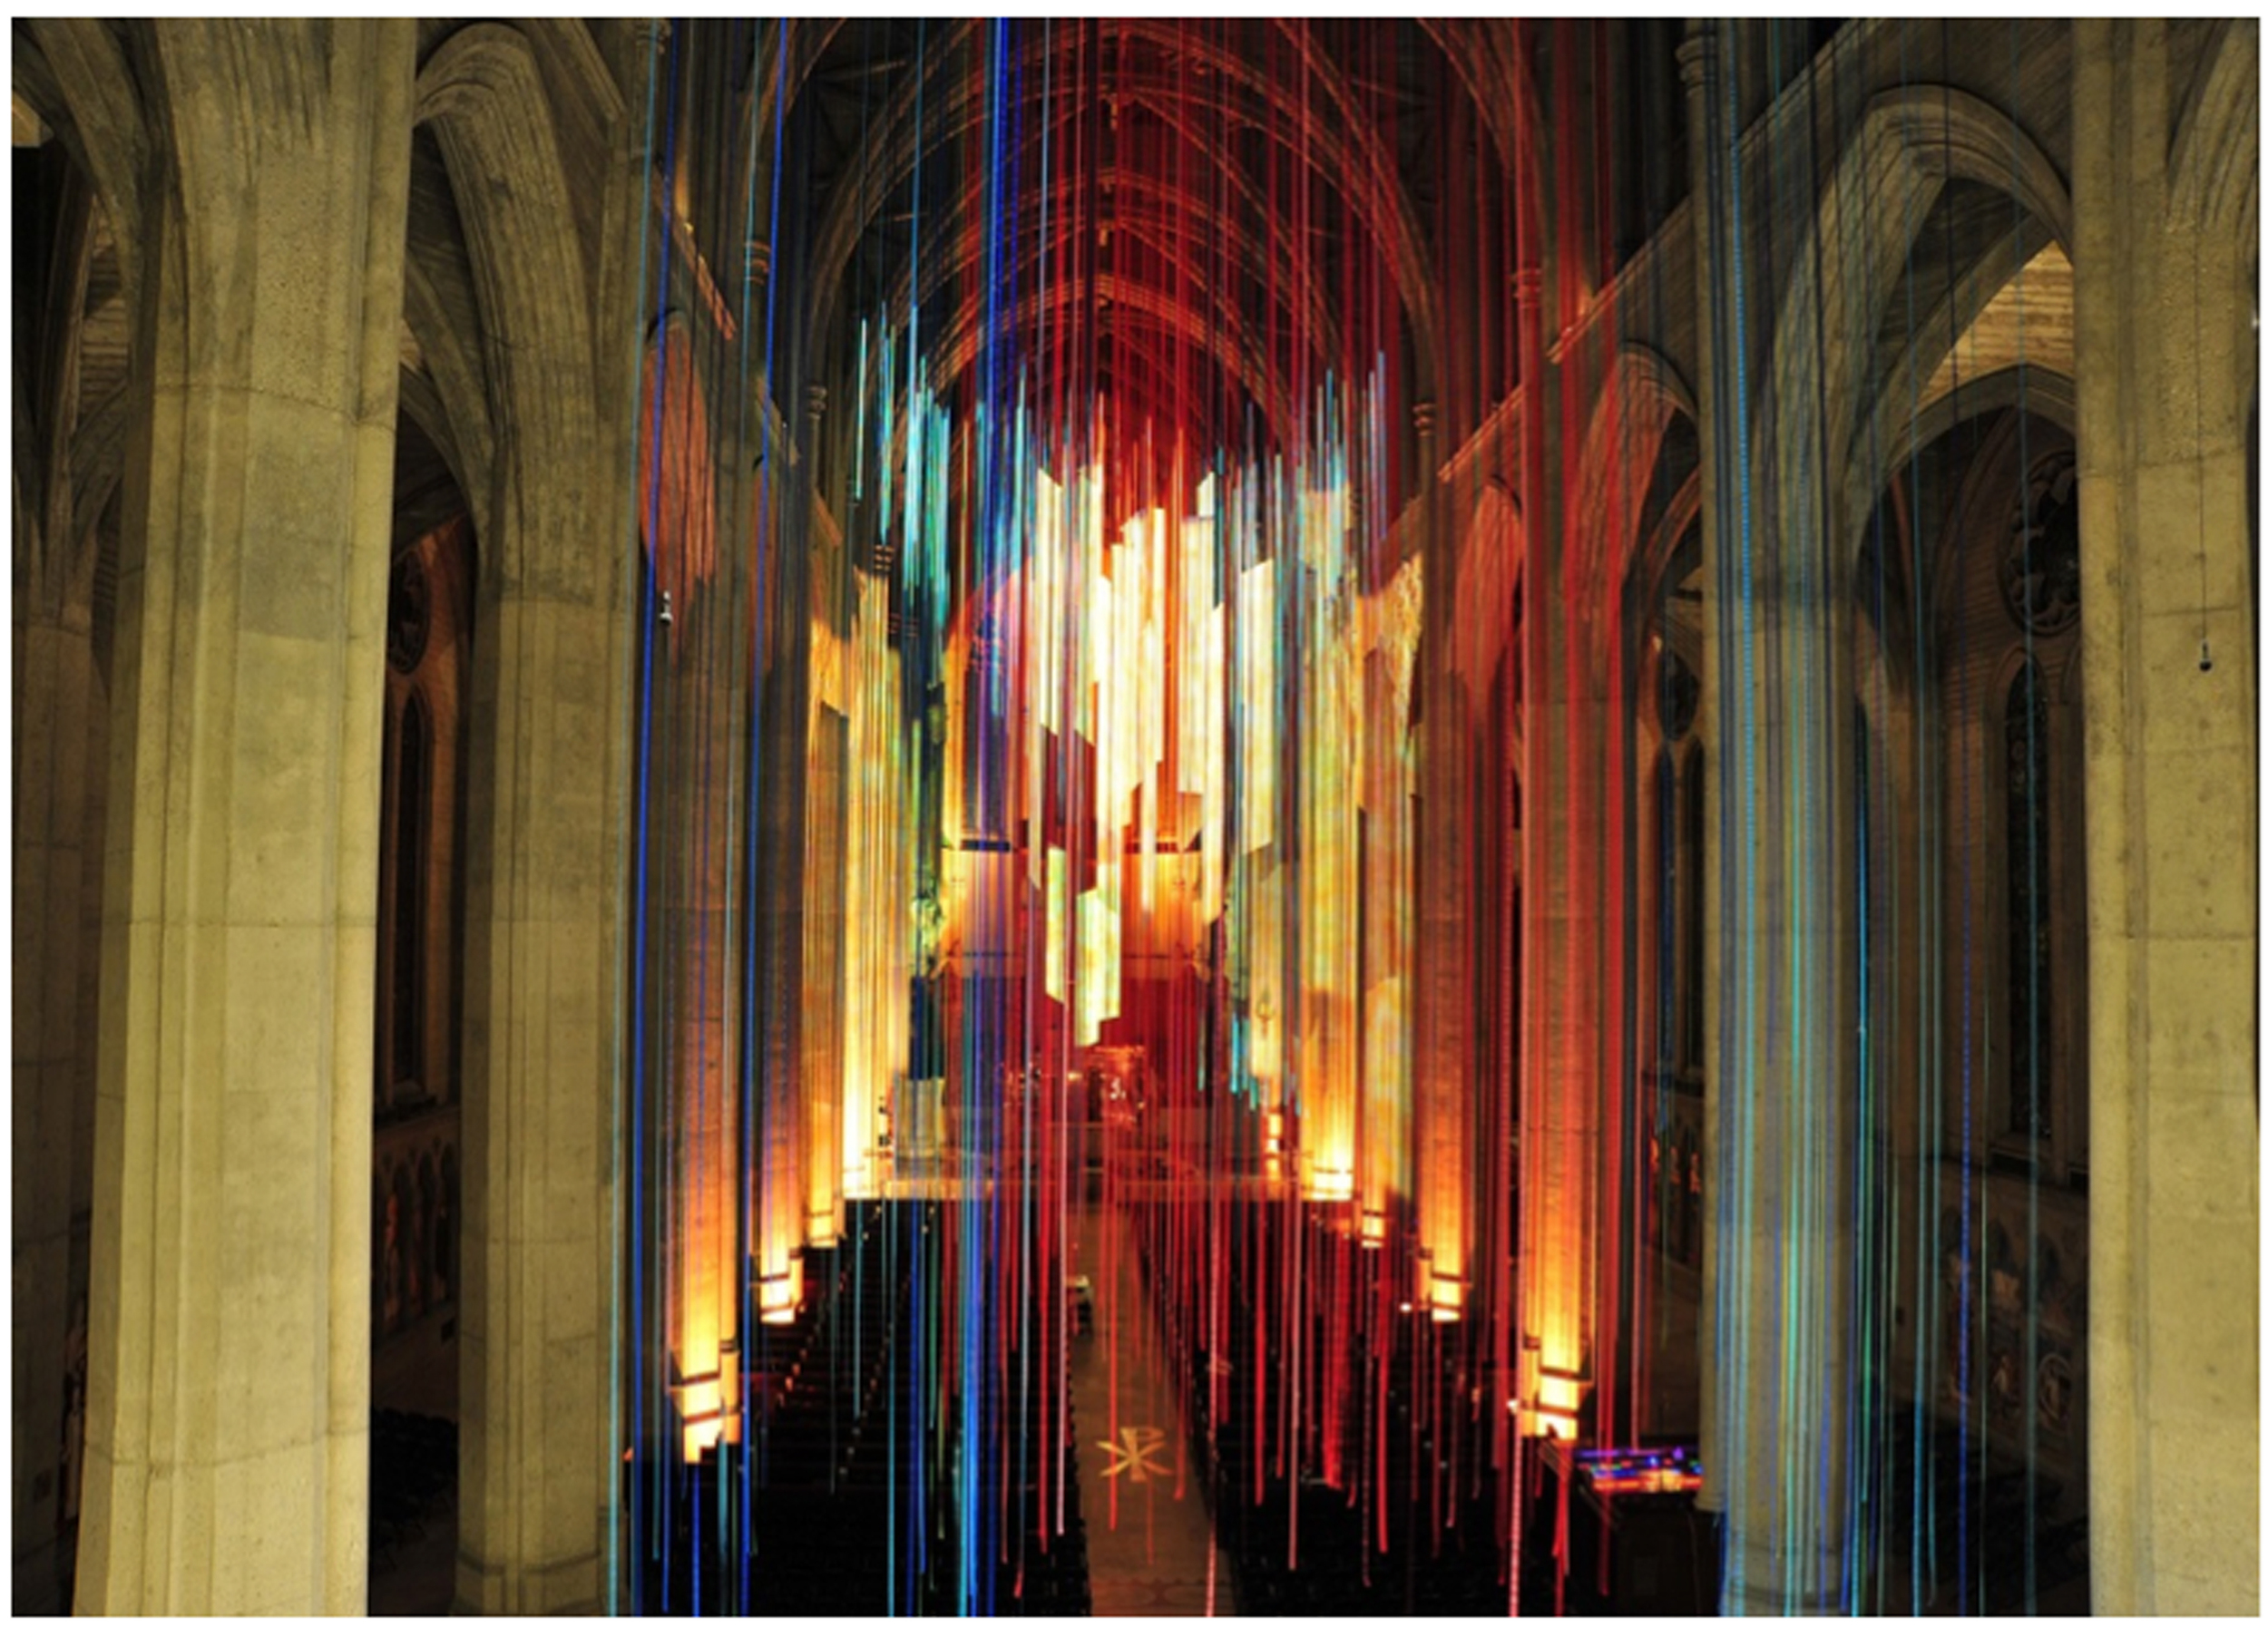 Anne Patterson .  Graced With Light  - A Site Specific Instillation at Grace Cathedral in San Francisco. 2014